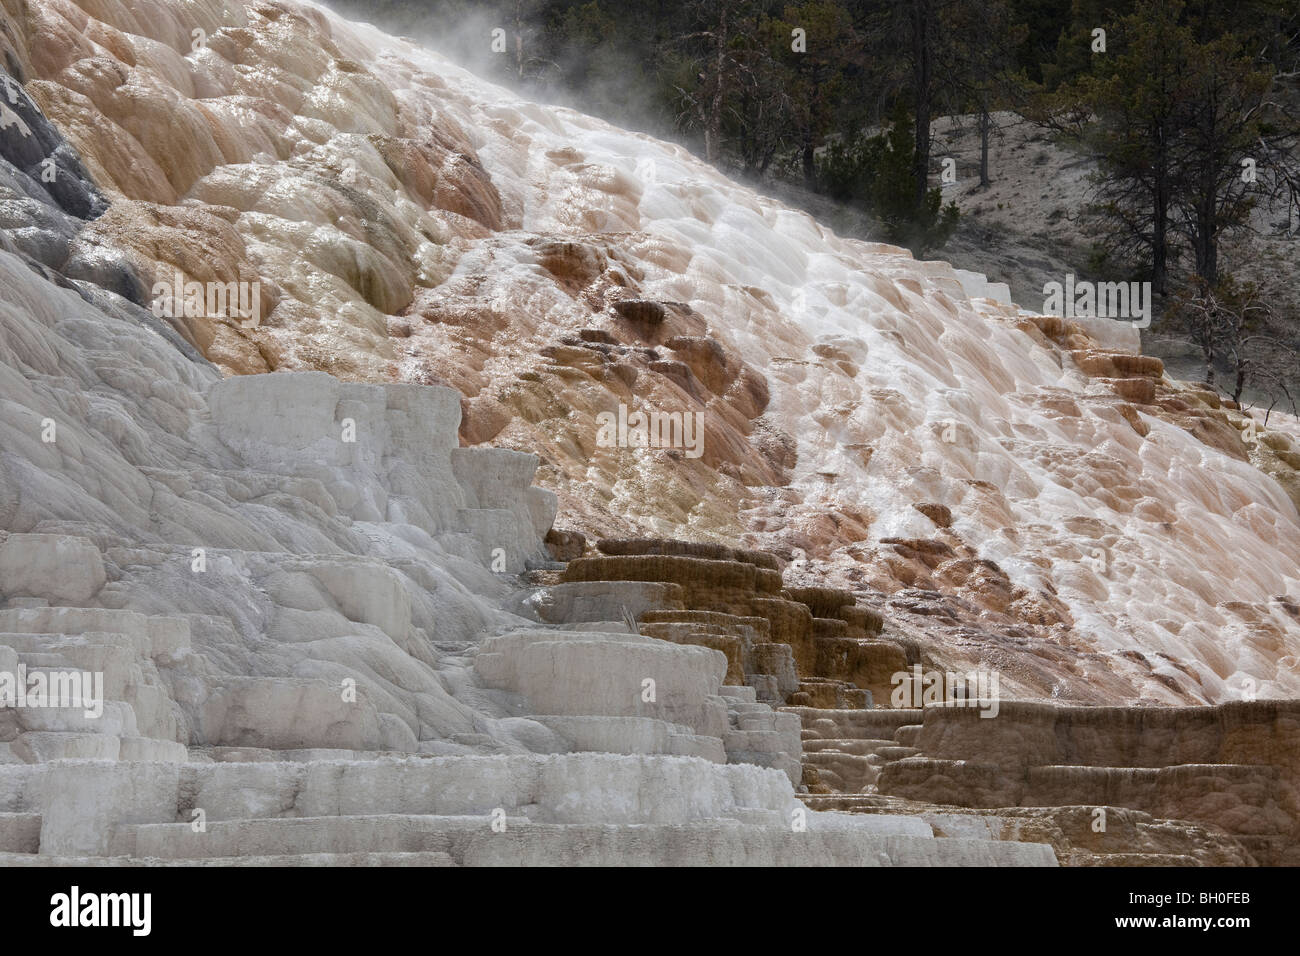 Terraced limestone at Mammoth Hot Springs, Yellowstone National Park, Wyoming. - Stock Image